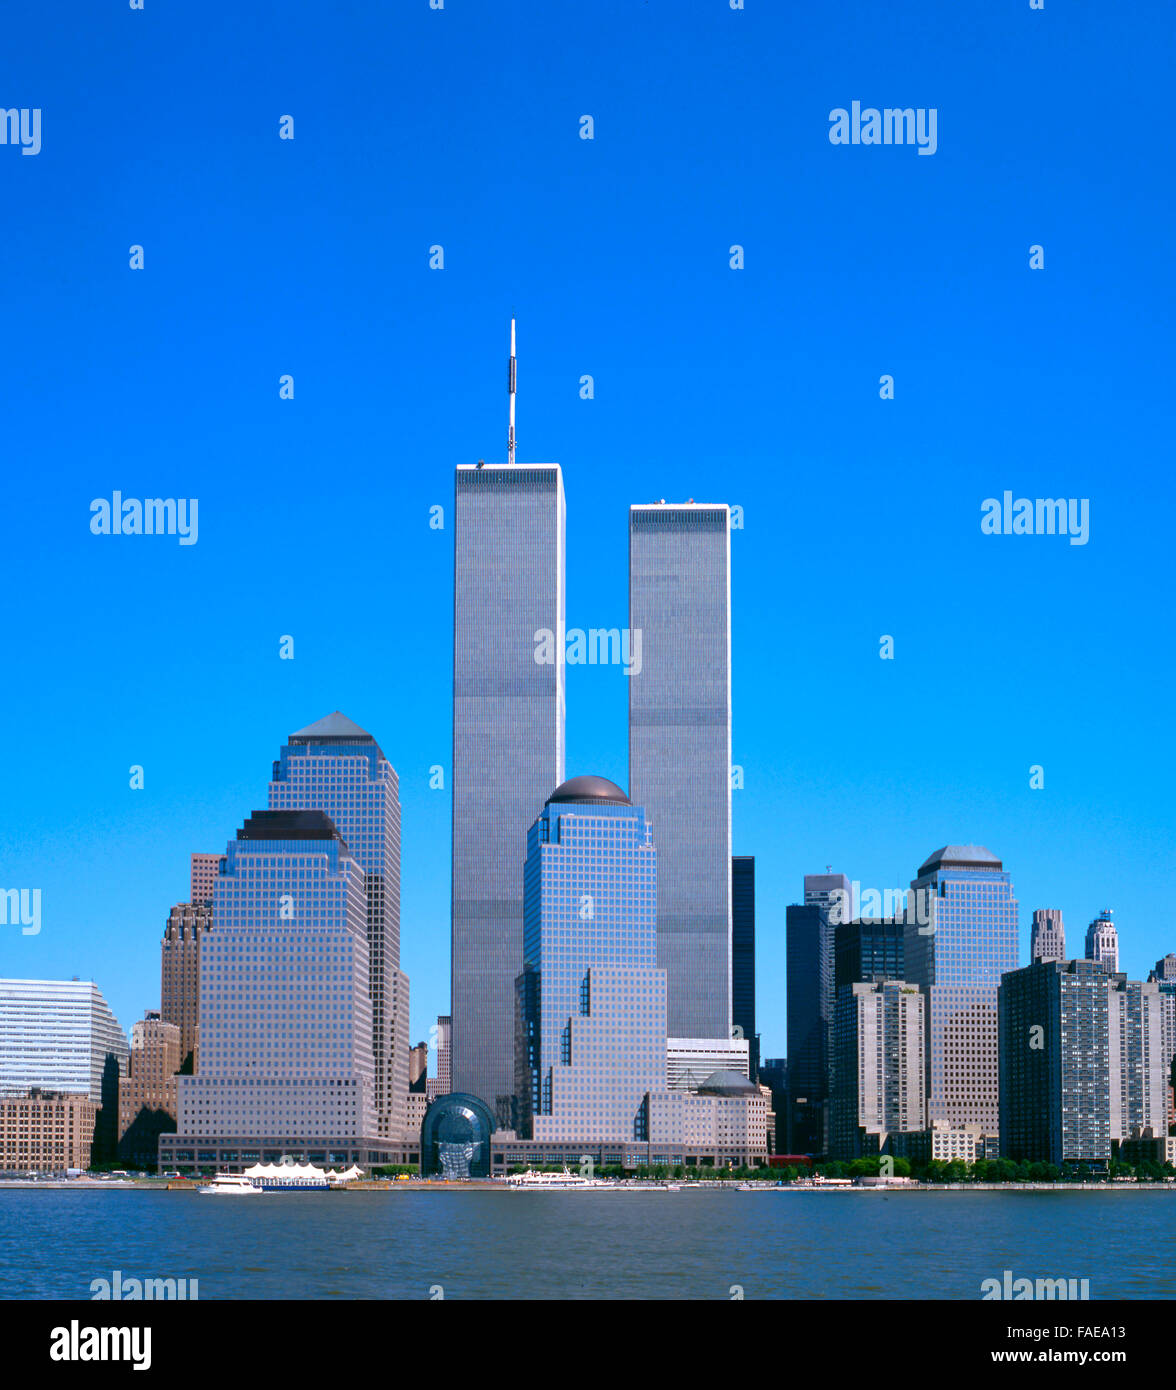 The NYC skyline with the World Trade Center seen from NJ - Stock Image